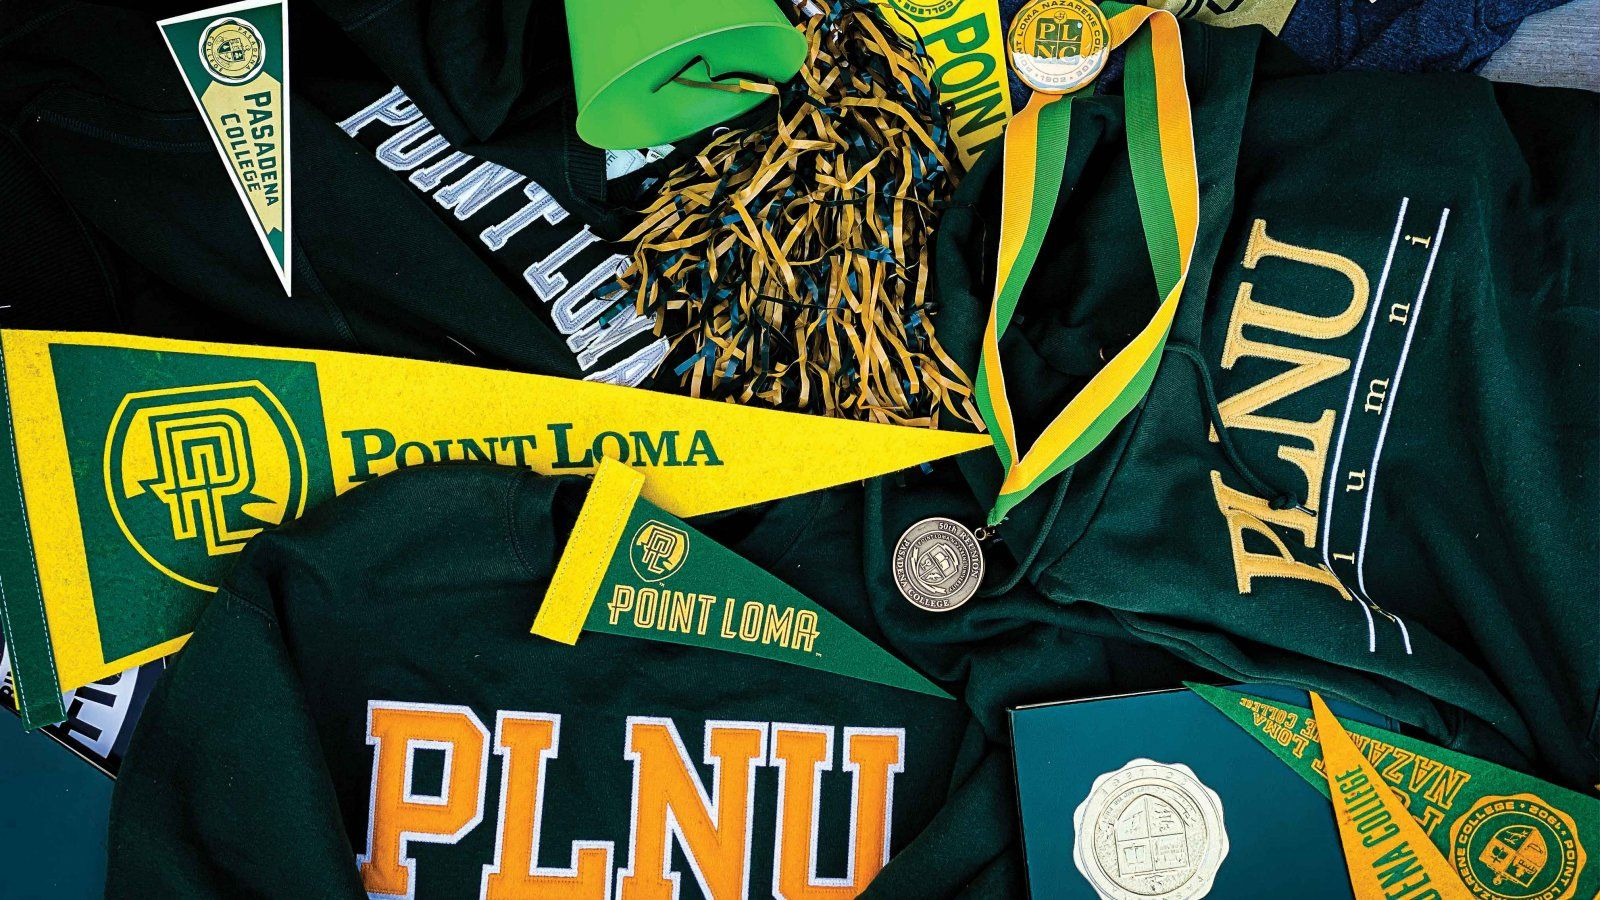 PLNU spirit wear